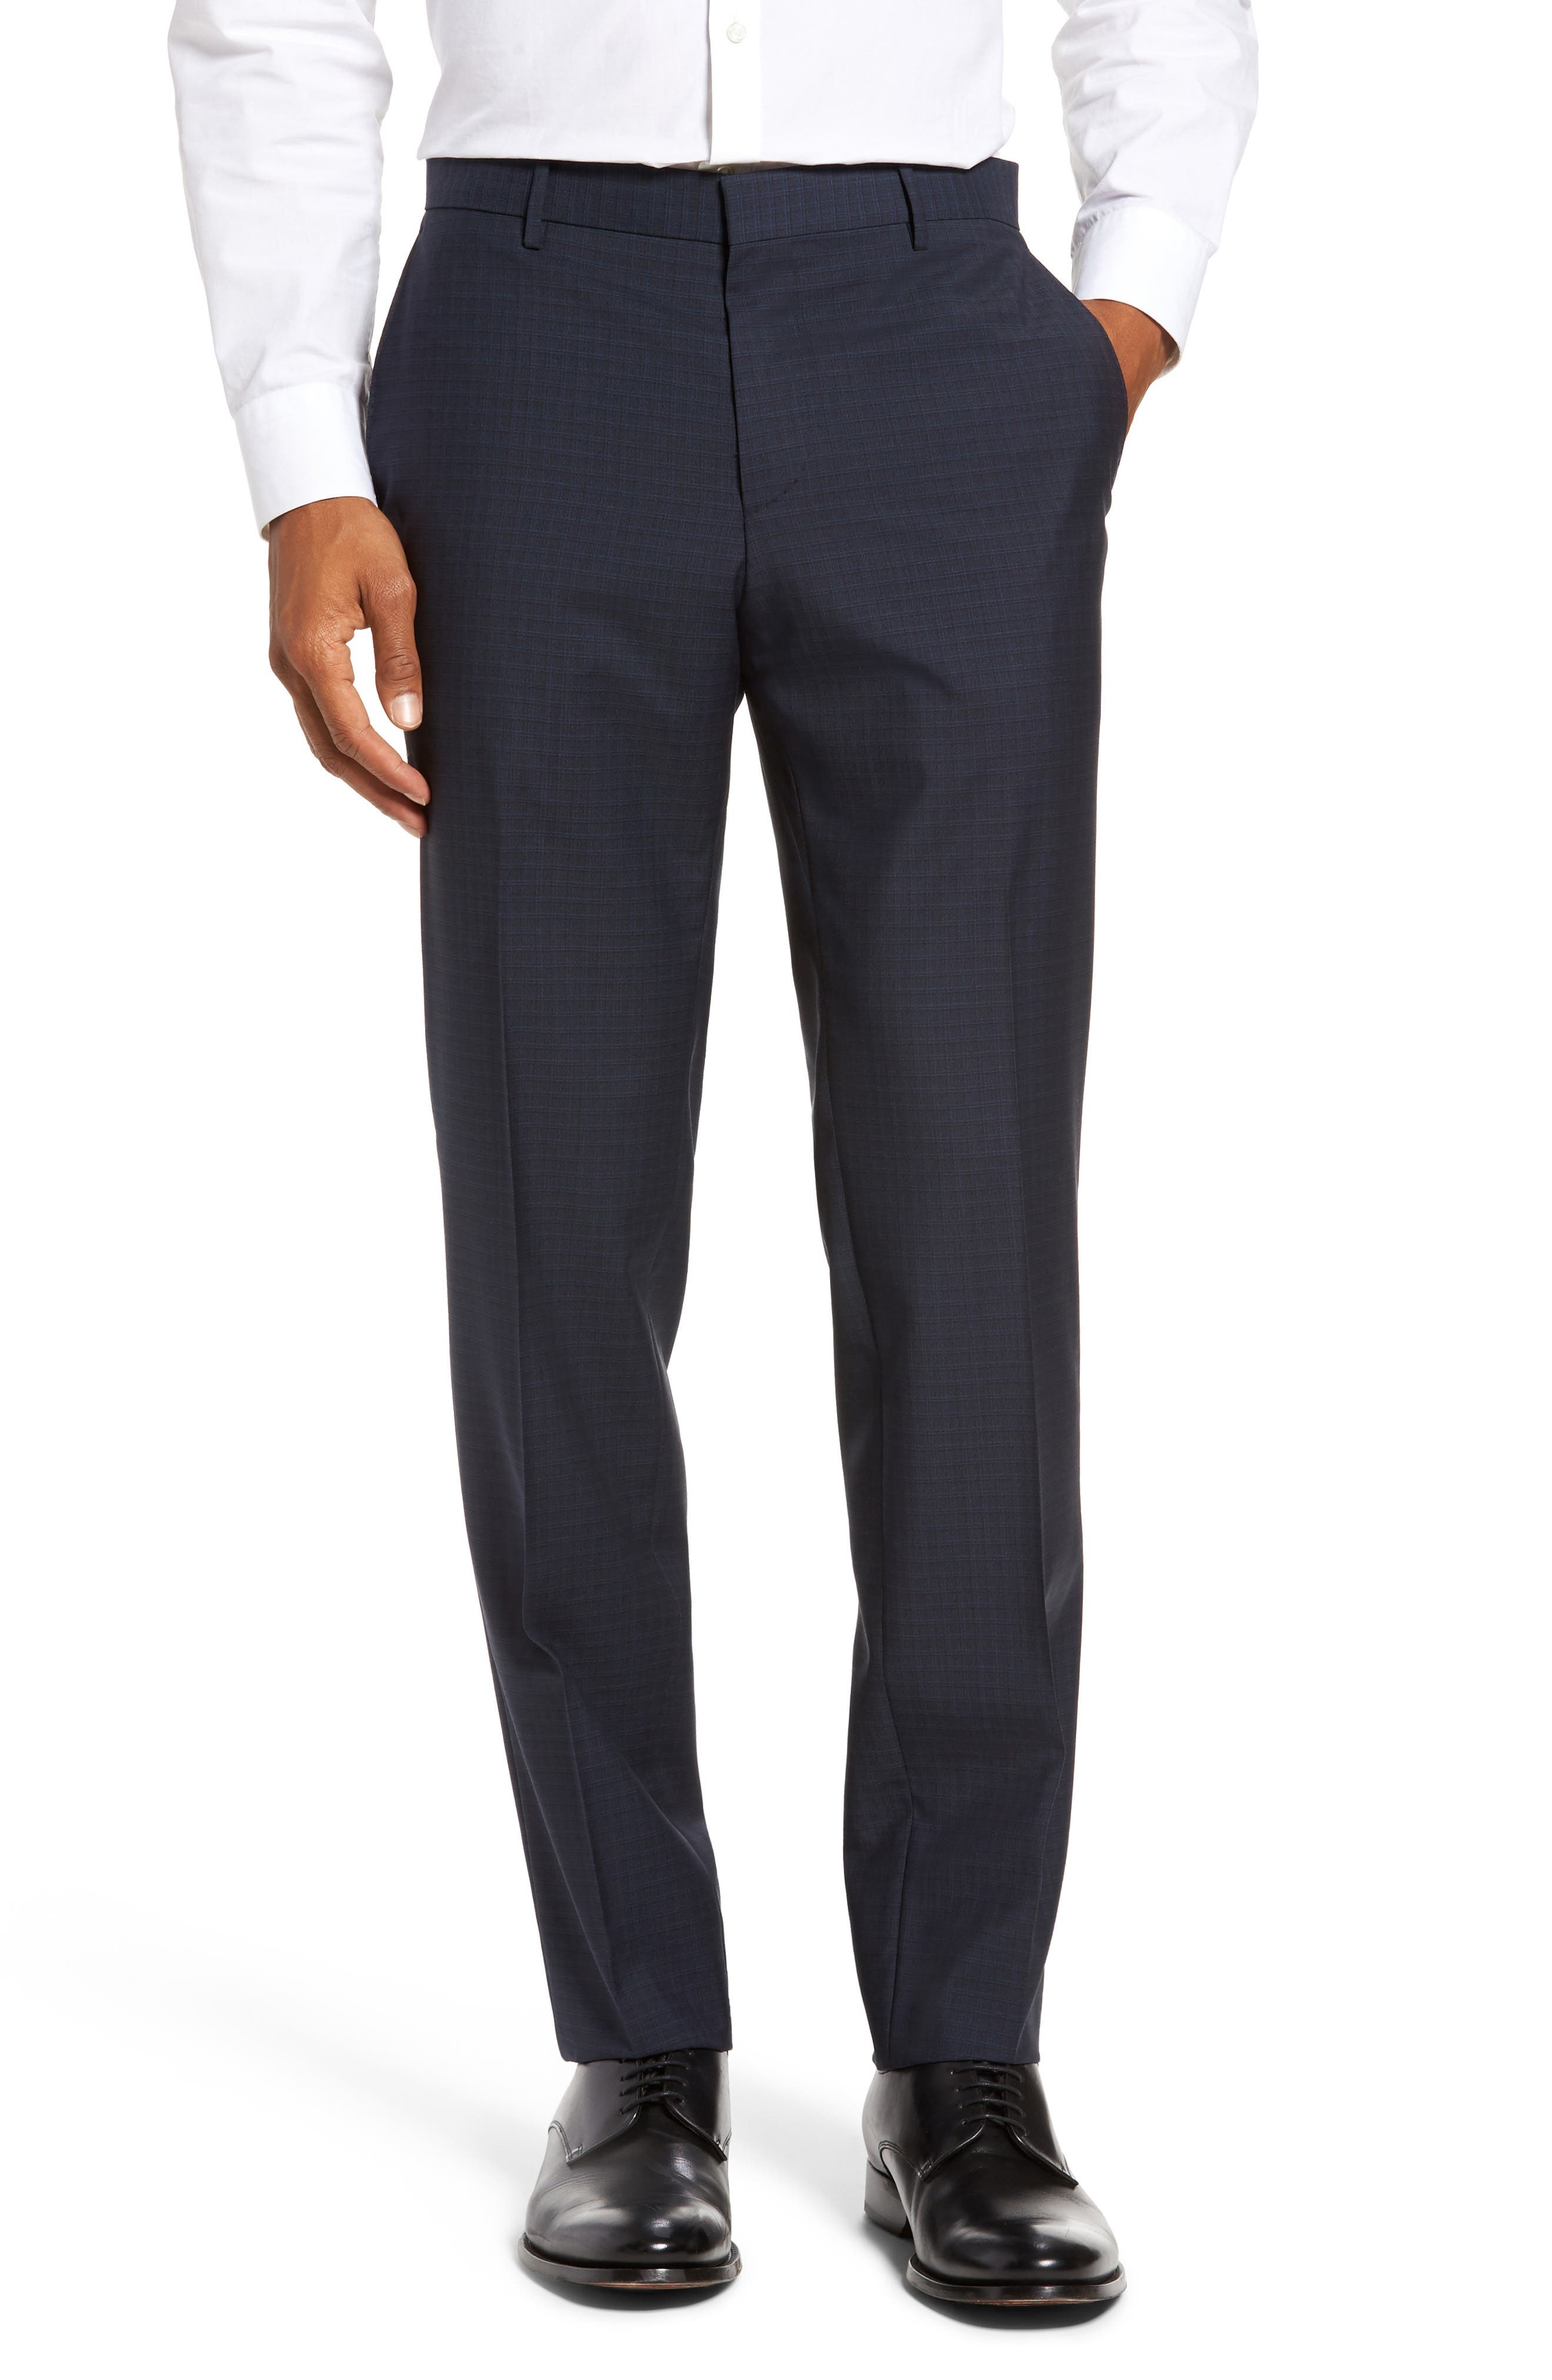 Benso Flat Front Check Wool Trousers,                             Main thumbnail 1, color,                             410